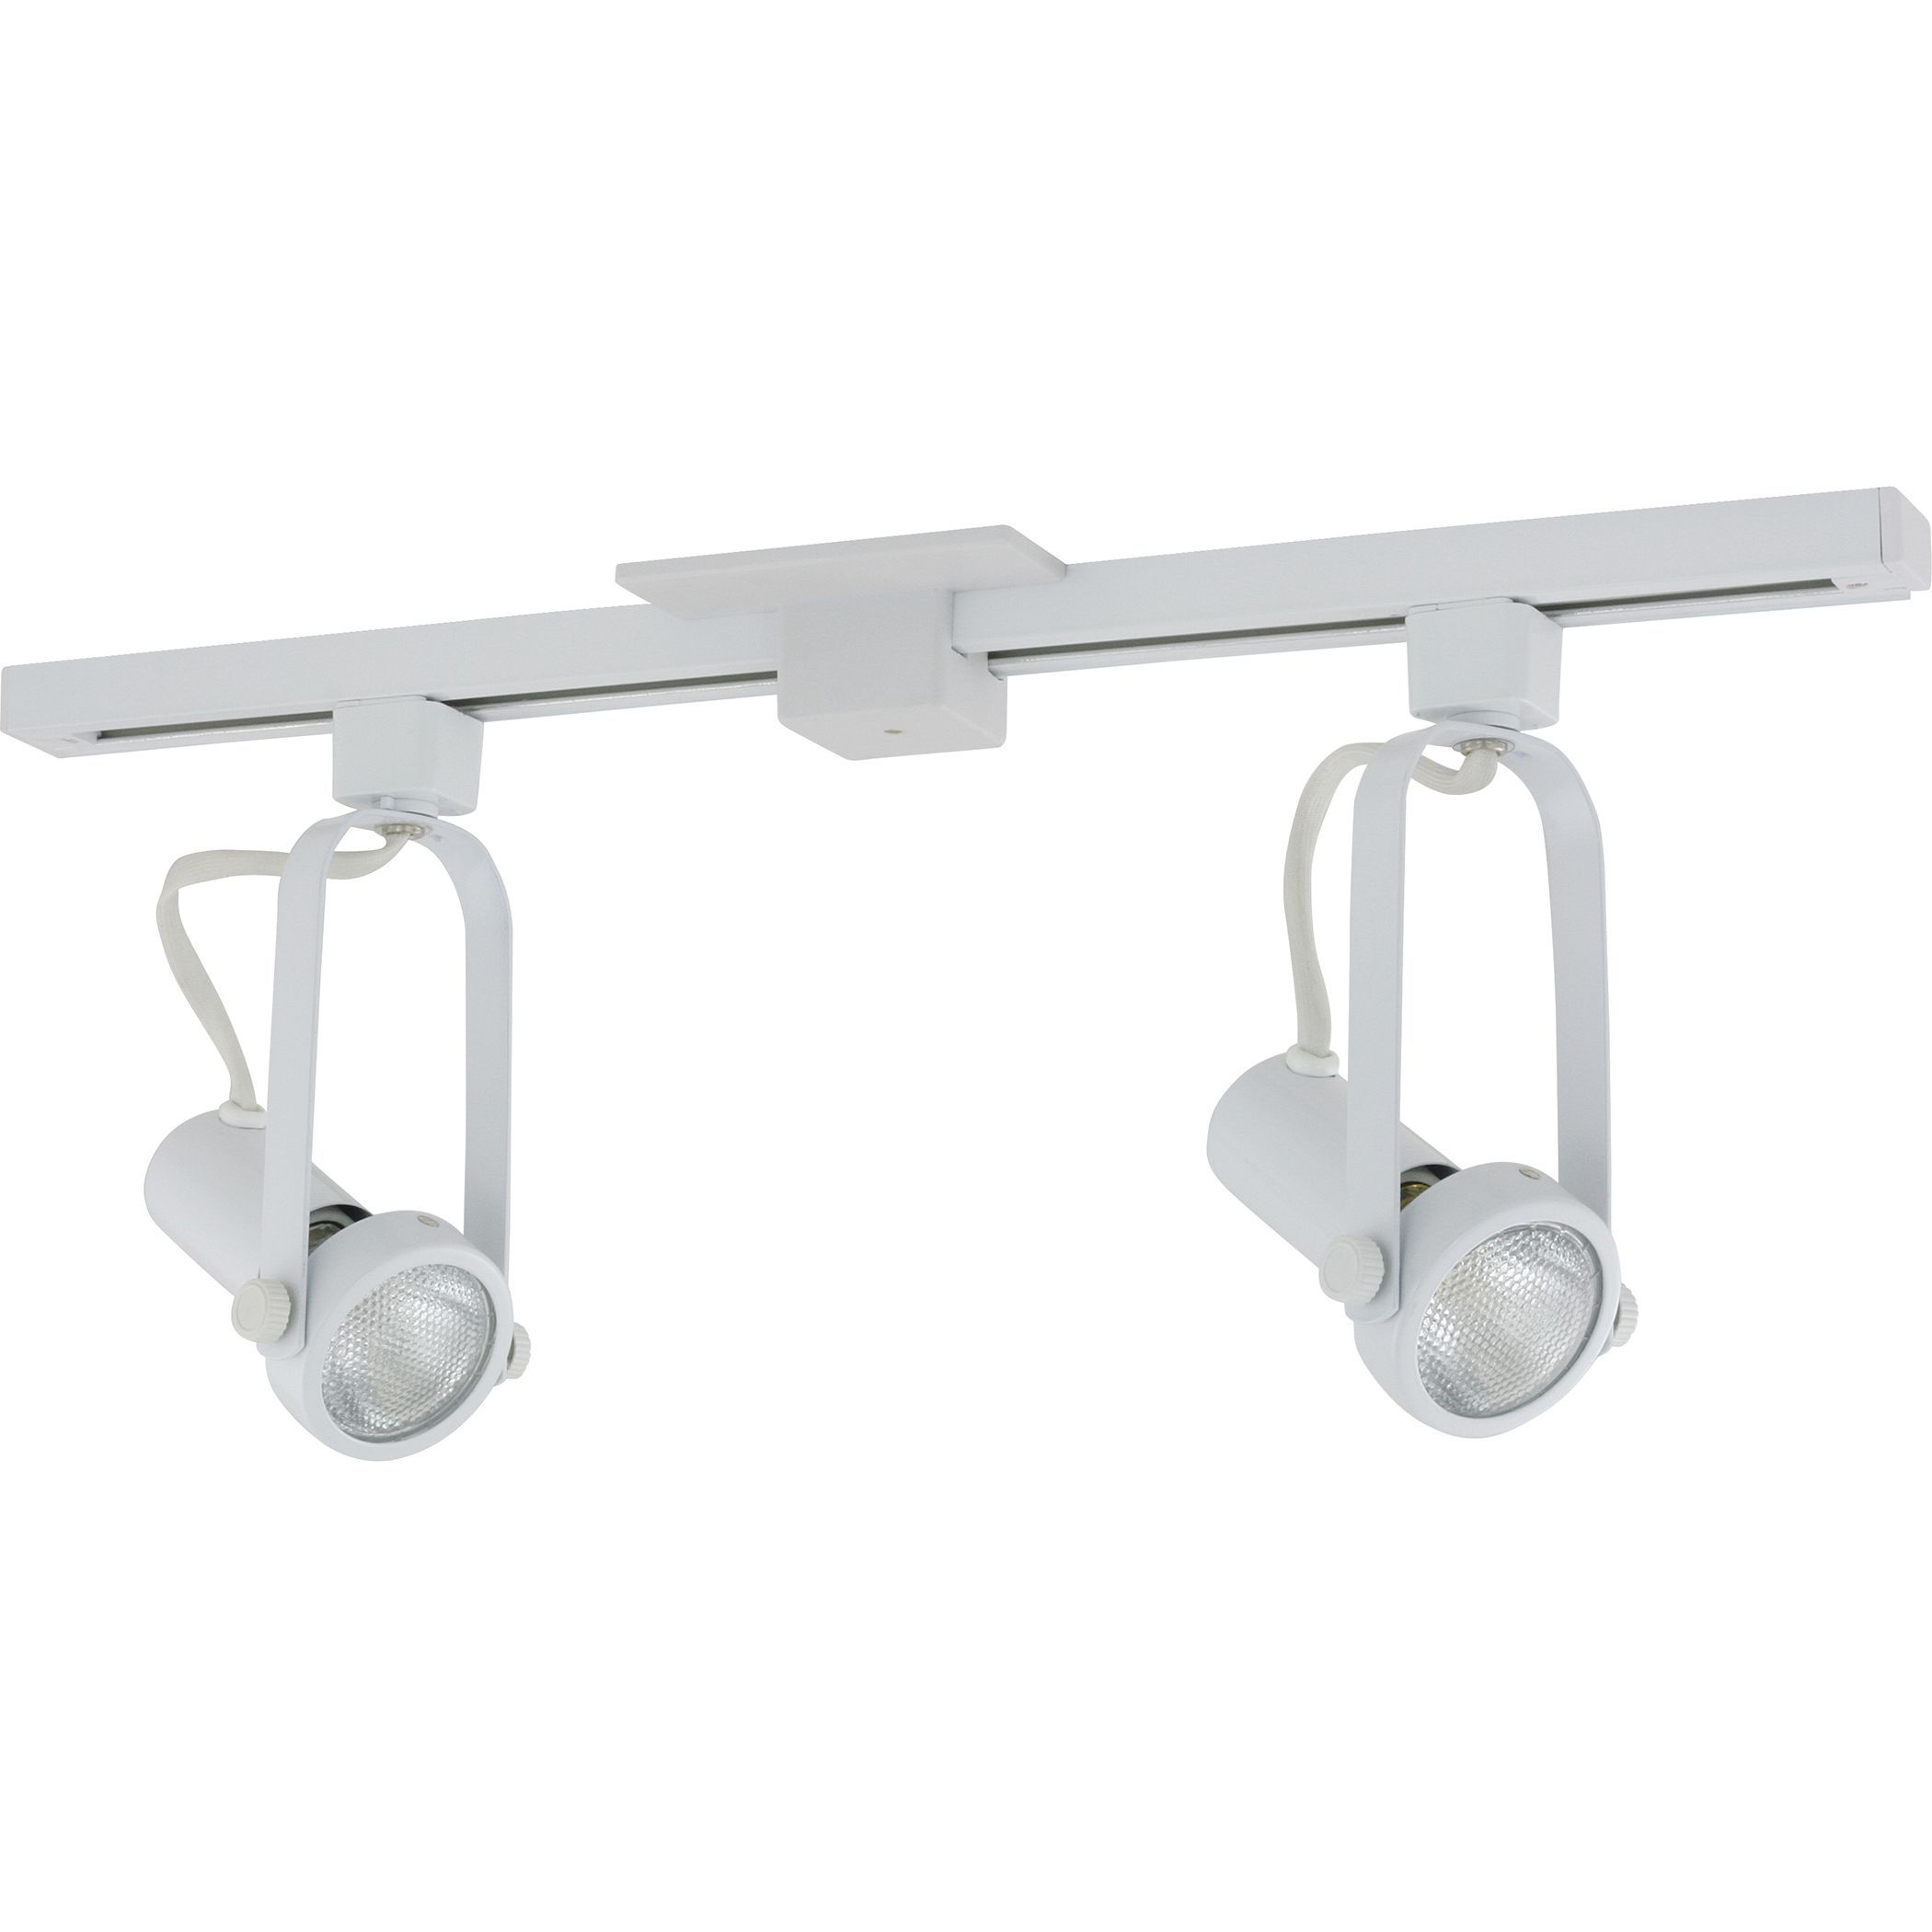 Liteline corporation 71250 80019 2 white athena two head track liteline corporation 71250 80019 2 white athena two head track lighting fixture aloadofball Image collections